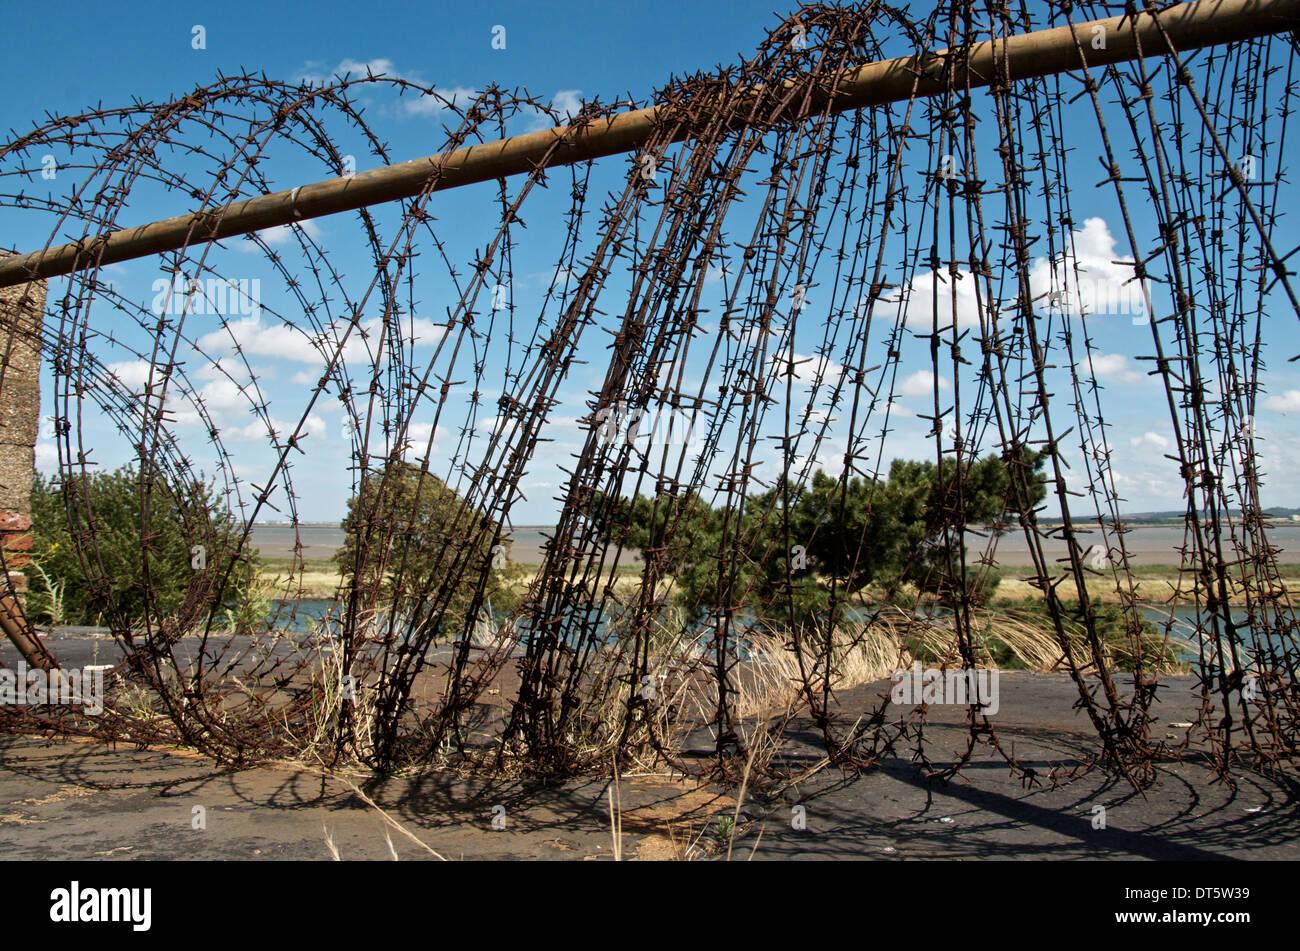 Barbed wire barricade on a rooftop with river view - Stock Image